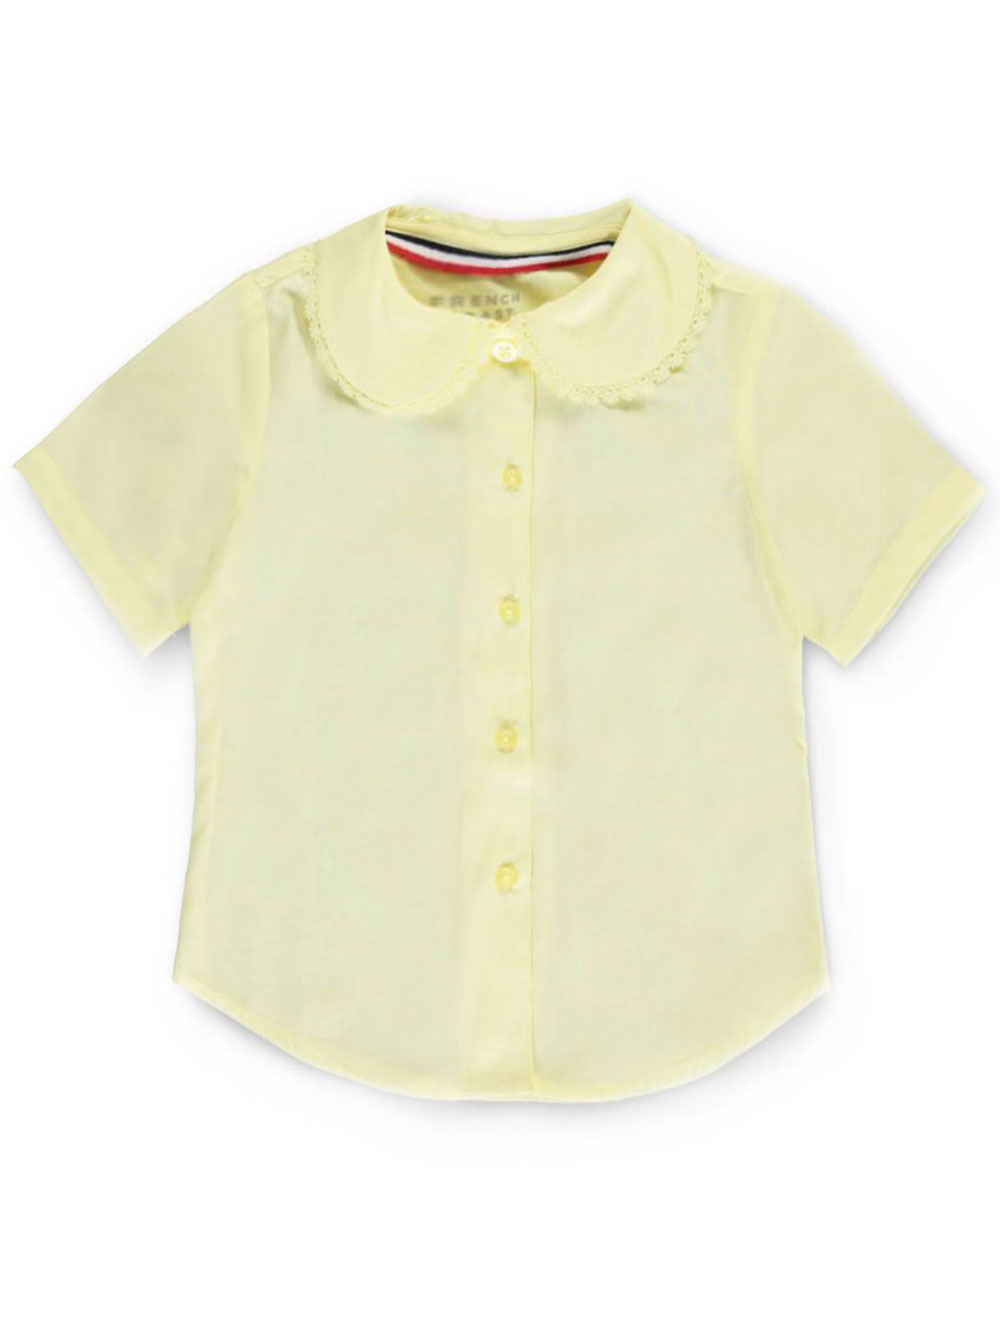 2ae04cb89 French Toast Big Girls' S/S Peter Pan Lace Trim Blouse (Sizes 7 - 20)